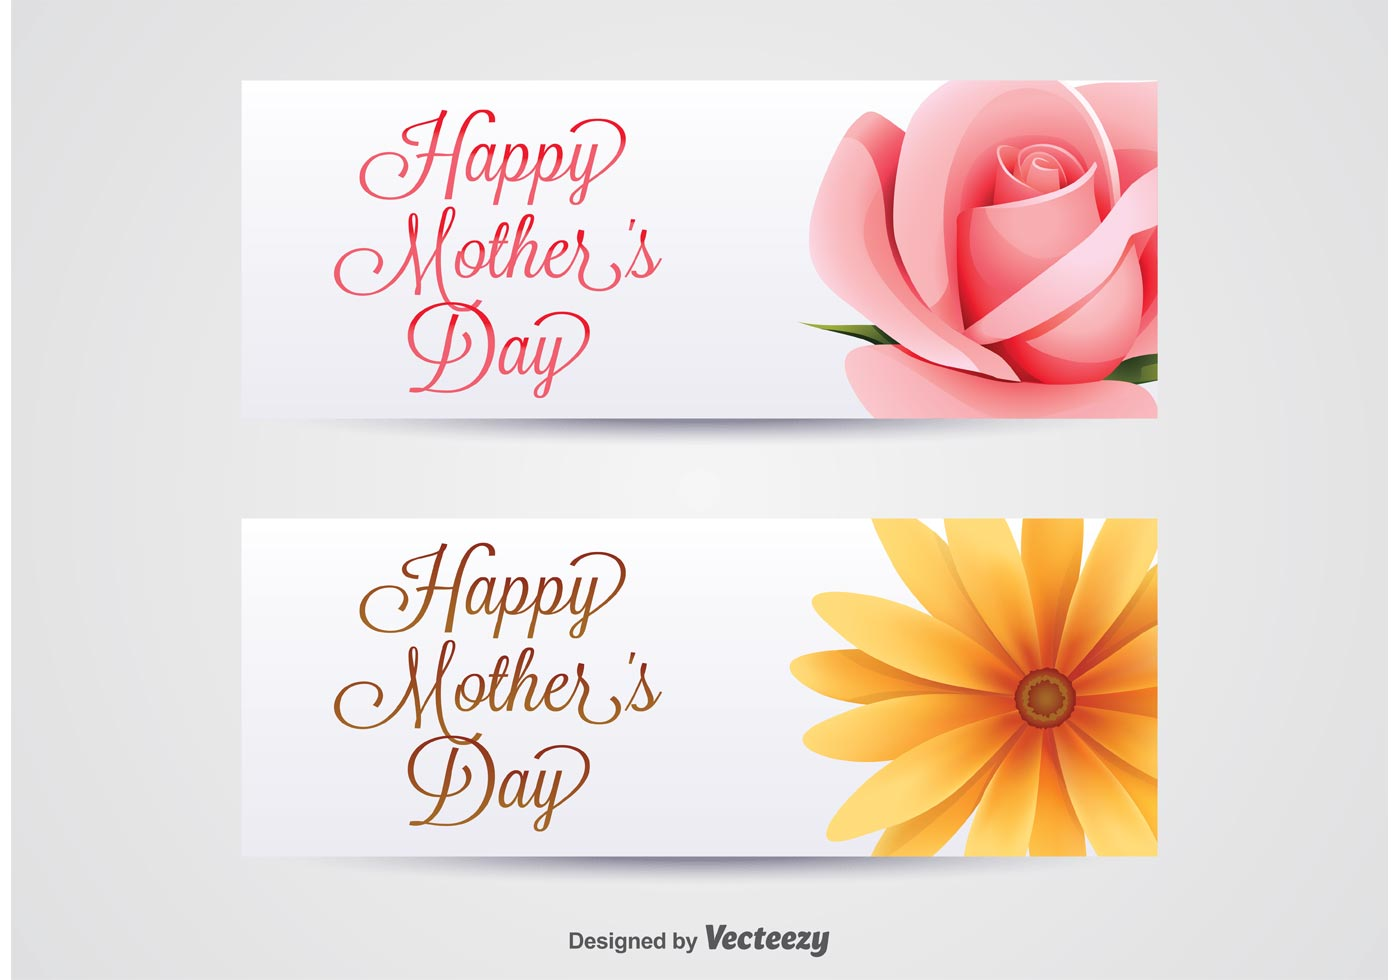 mother 39 s day banners download free vector art stock graphics images. Black Bedroom Furniture Sets. Home Design Ideas